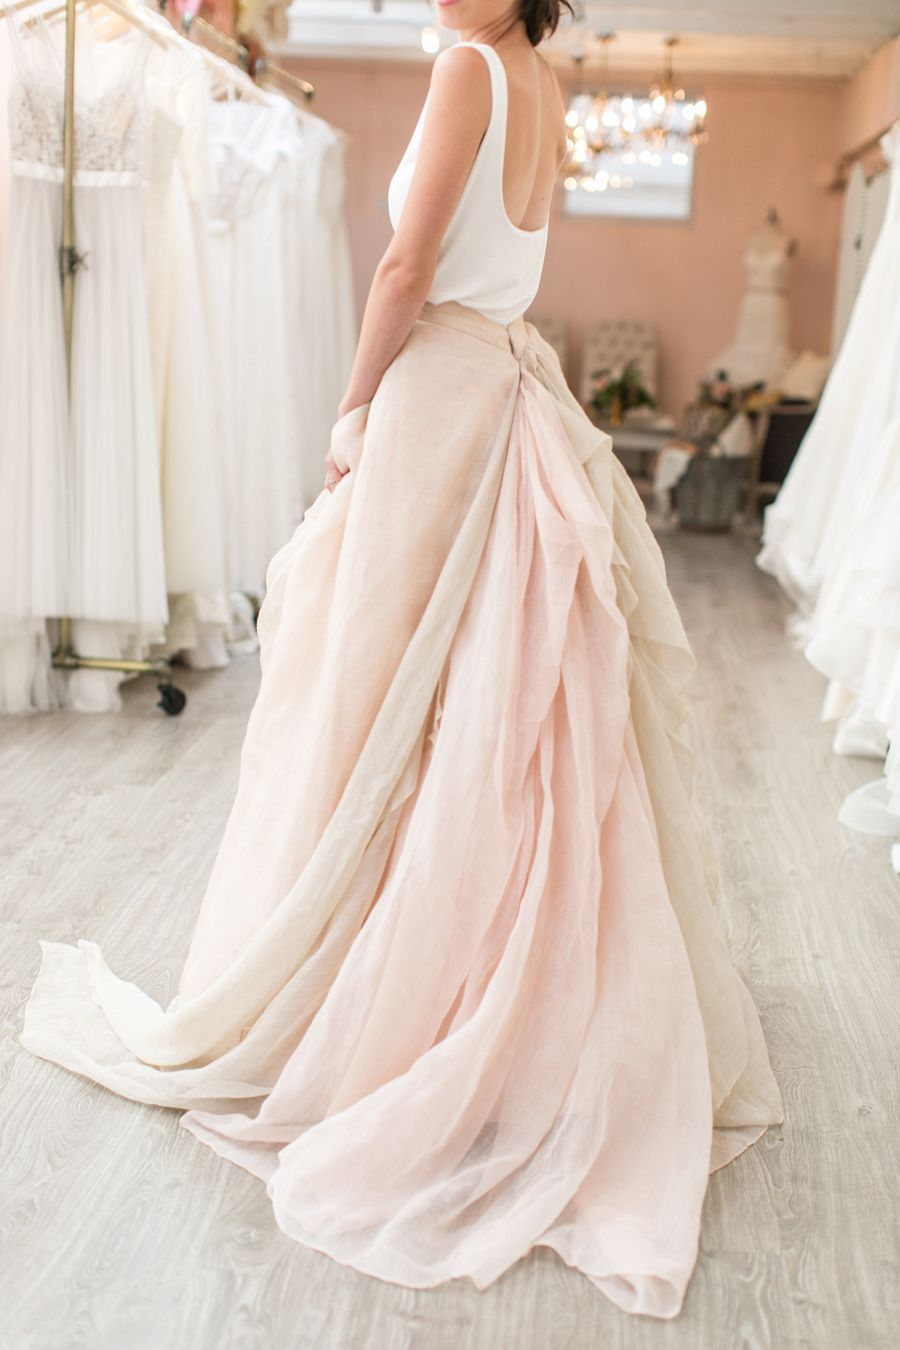 backyard wedding dresses 8 Tips For Finding the Perfect Wedding Dress